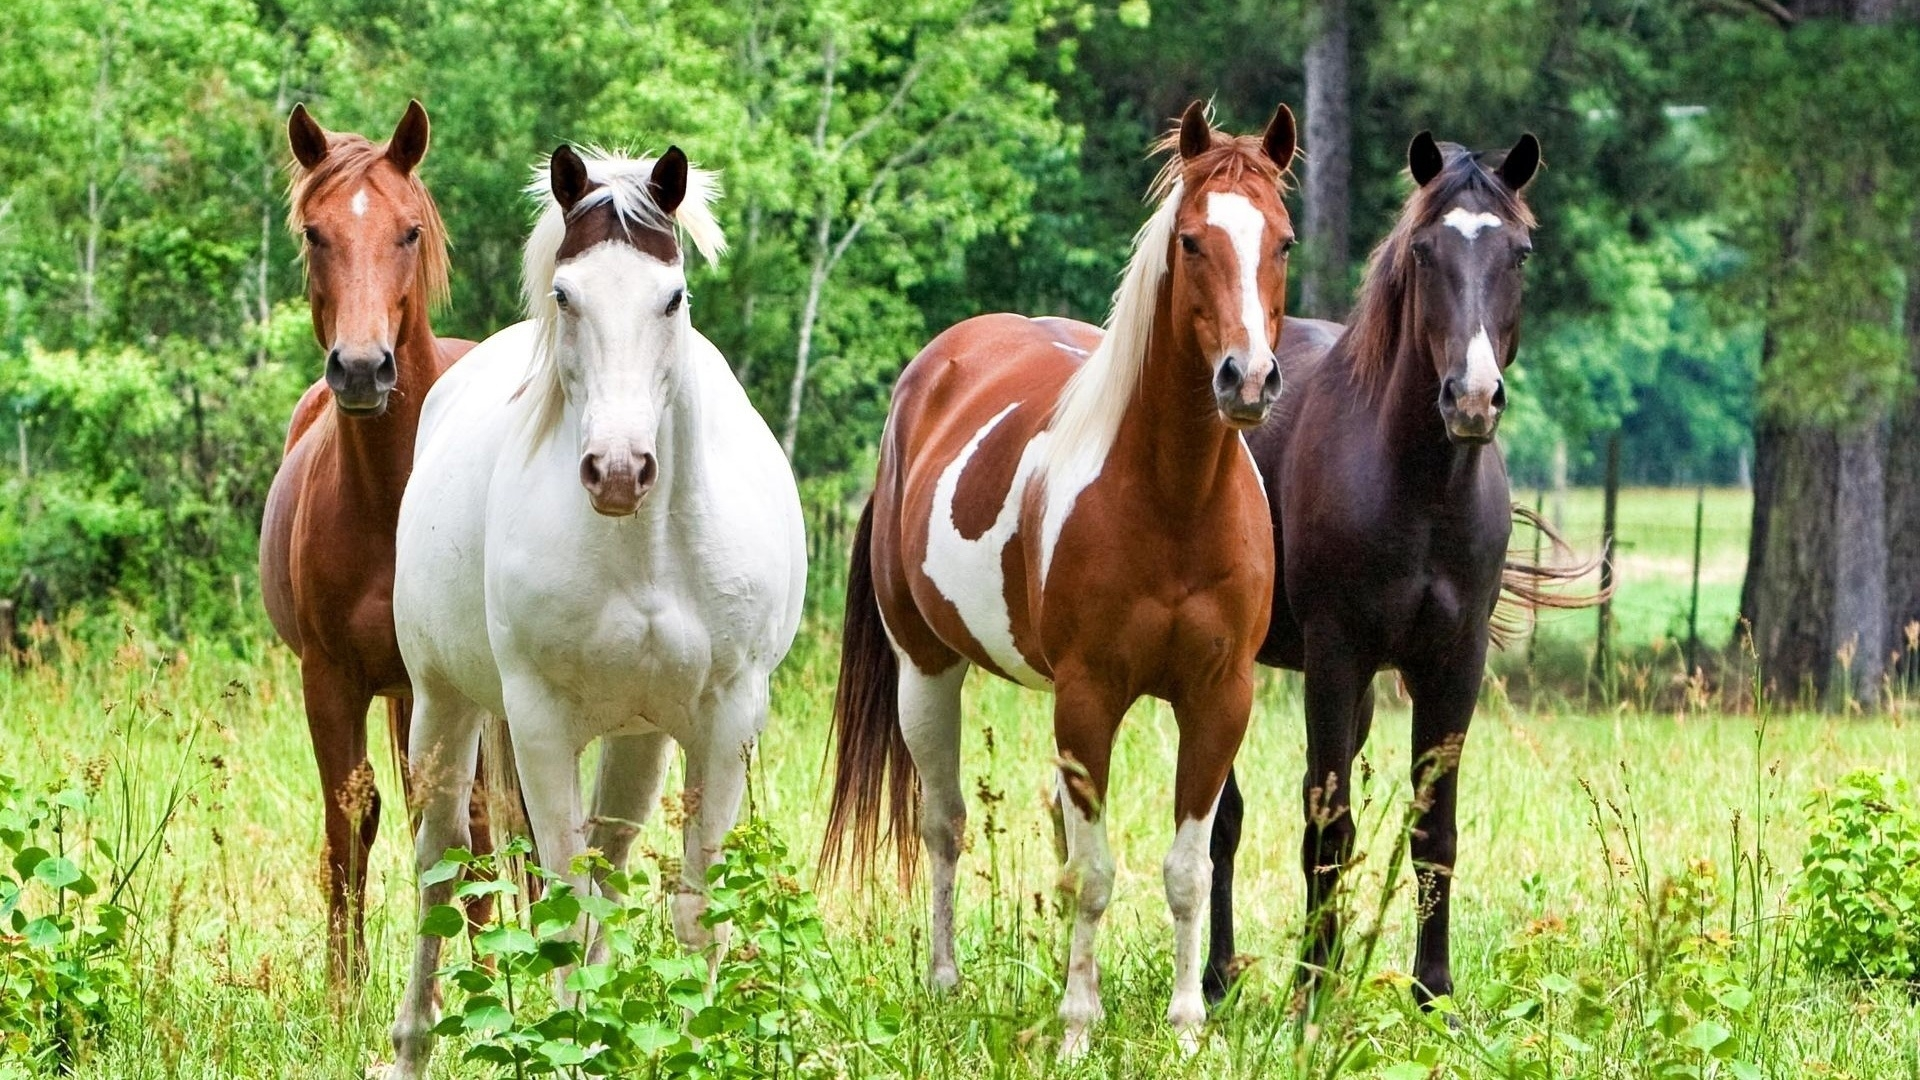 Horses for 1920 x 1080 HDTV 1080p resolution